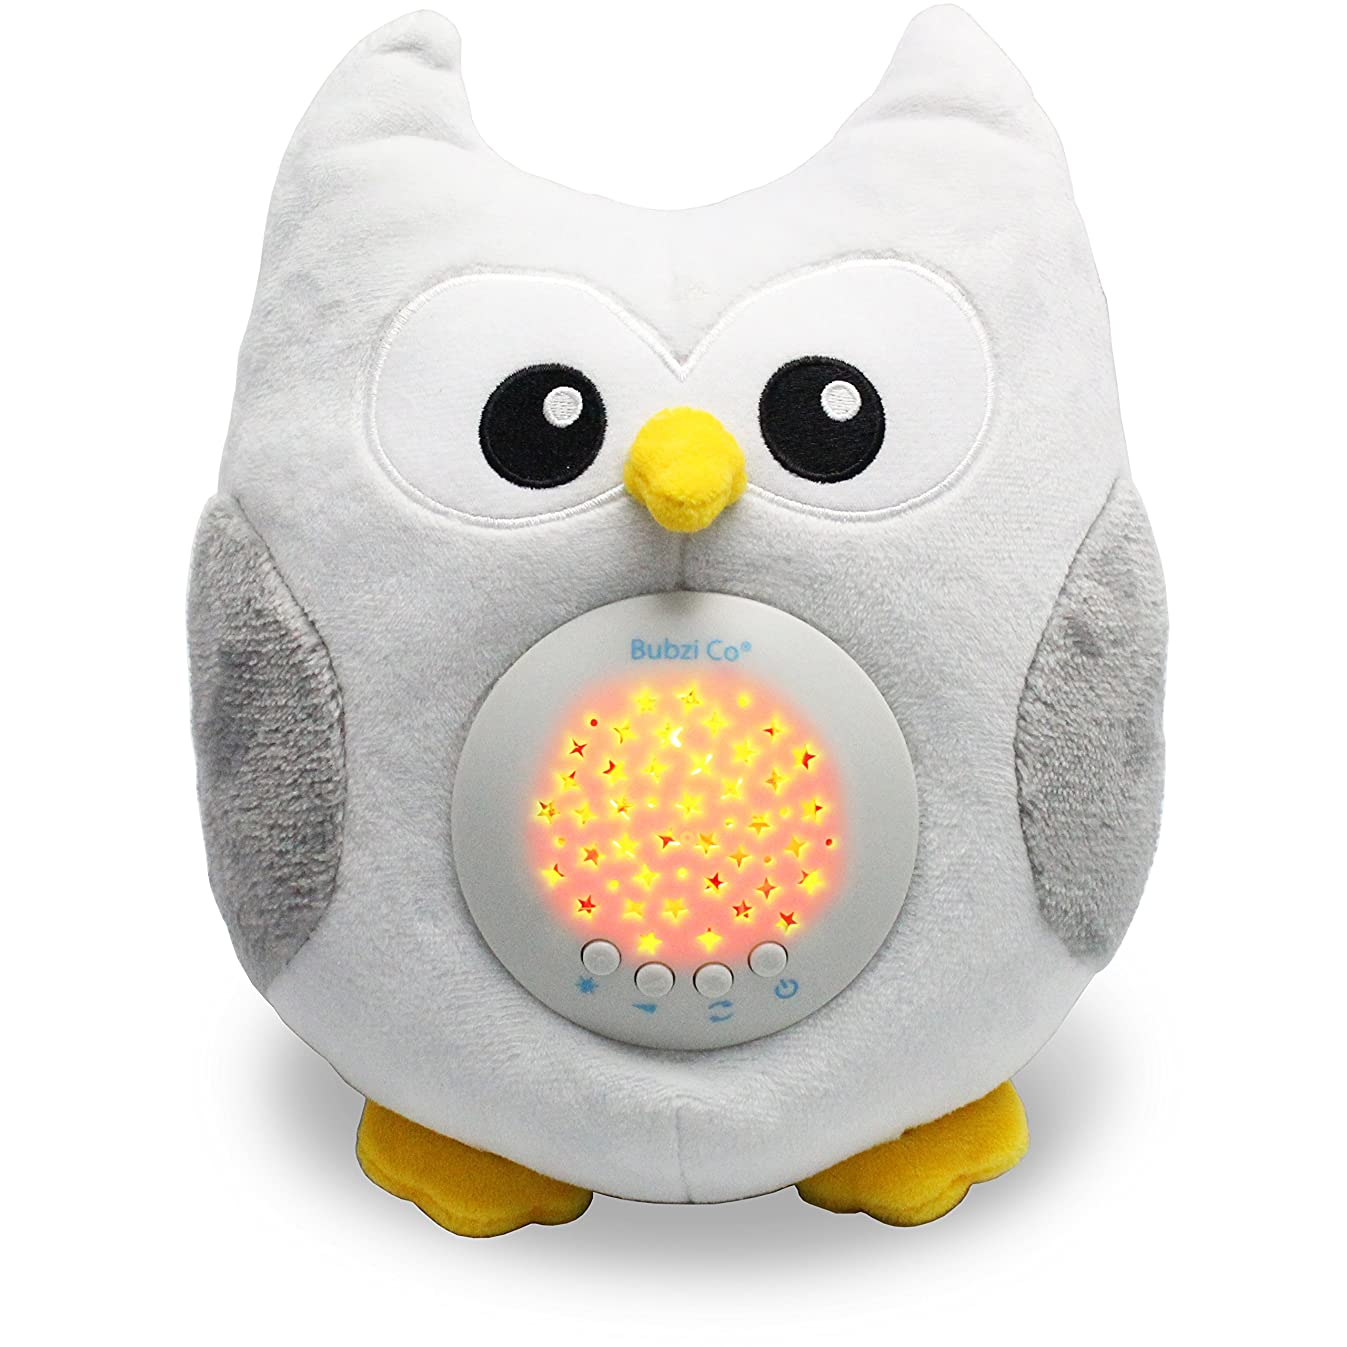 Bubzi Co Baby White Noise Sound Machine & Sleep Aid Night Light. New Baby Gift, Baby Essentials Woodland Owl Decor Nursery & Portable Soother Stuffed Animals Owl for Crib to Comfort Plush Toy